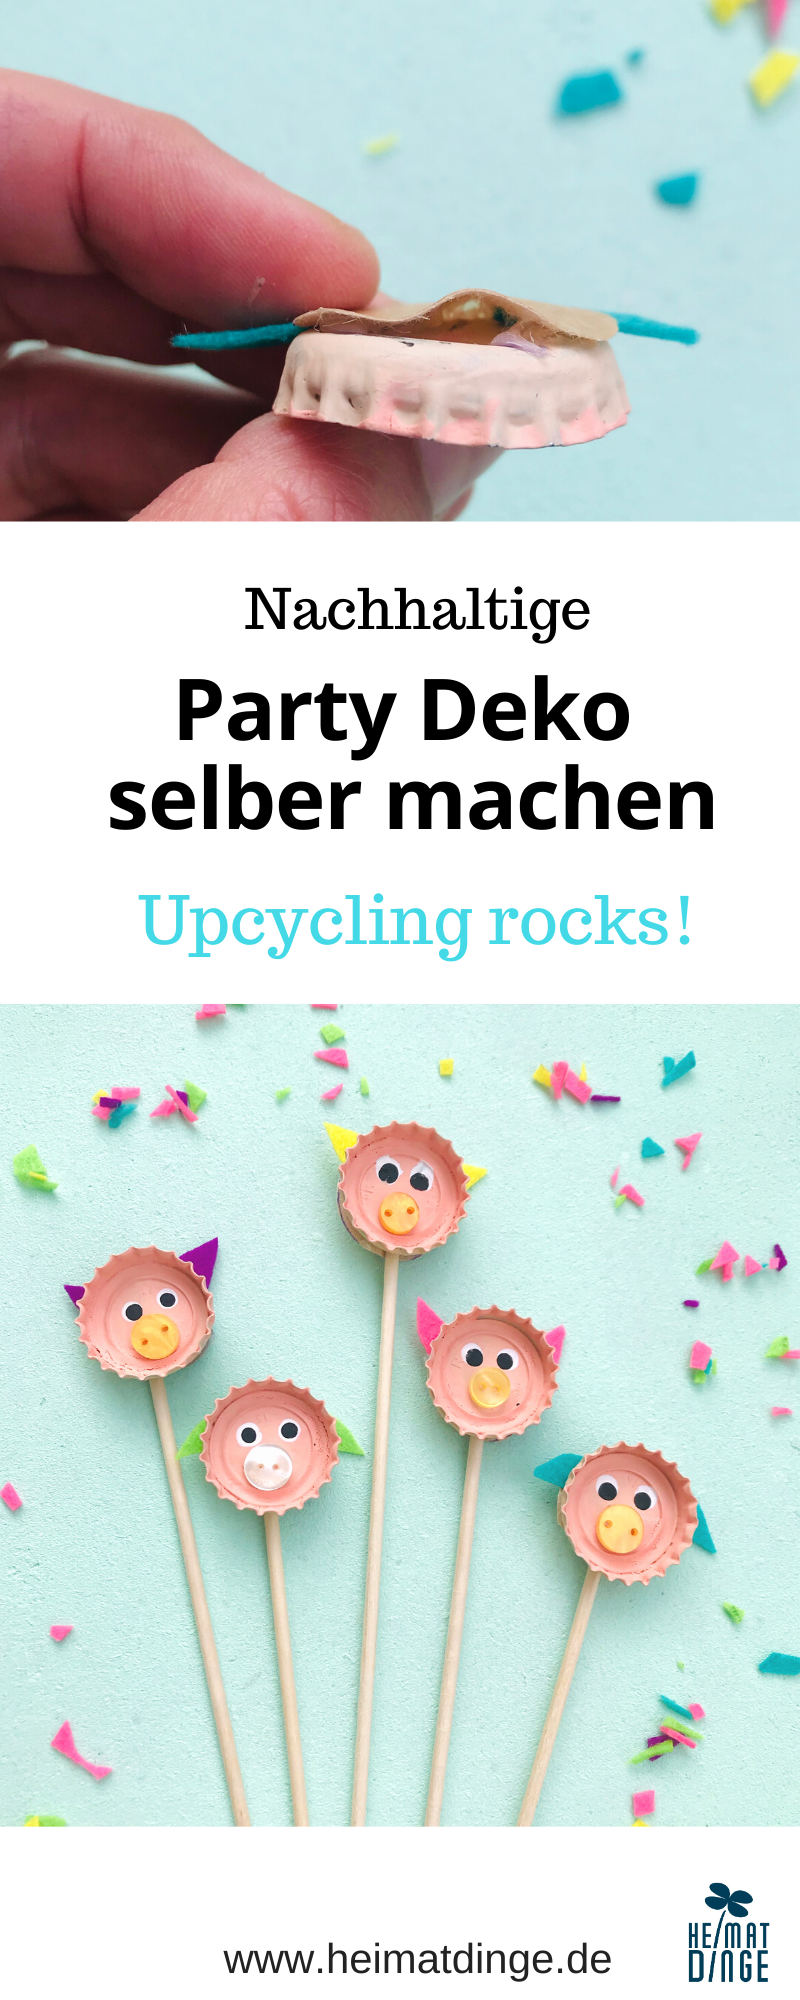 Party Deko selber machen, Upcycling Bastelidee fuer Kinder, Party Picker DIY